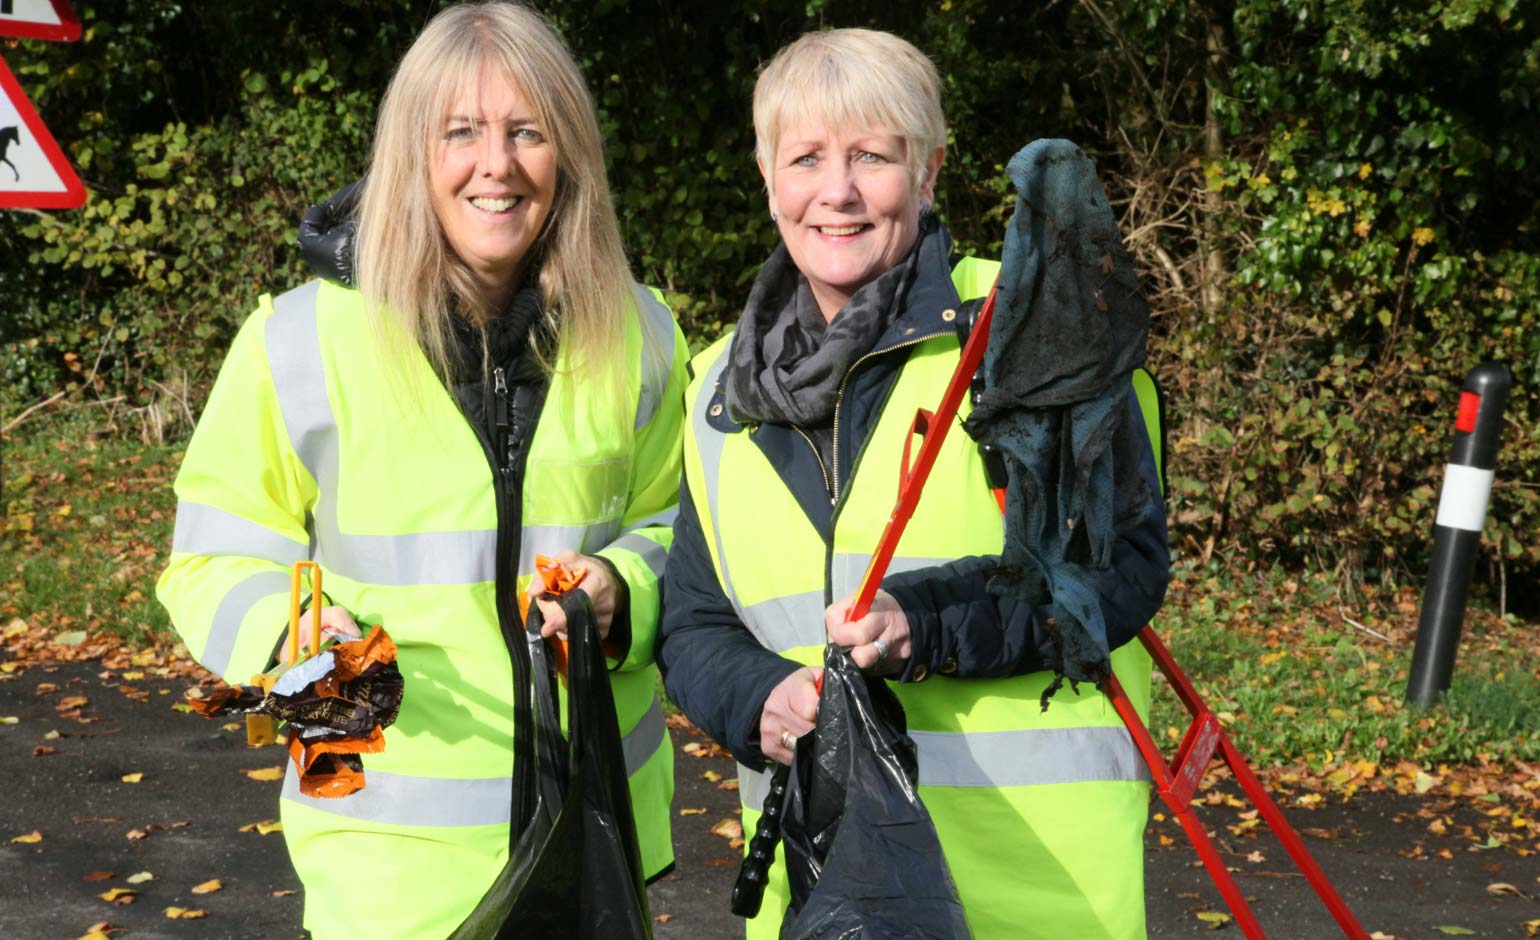 Next community clean up date announced for streets of Peasedown St John